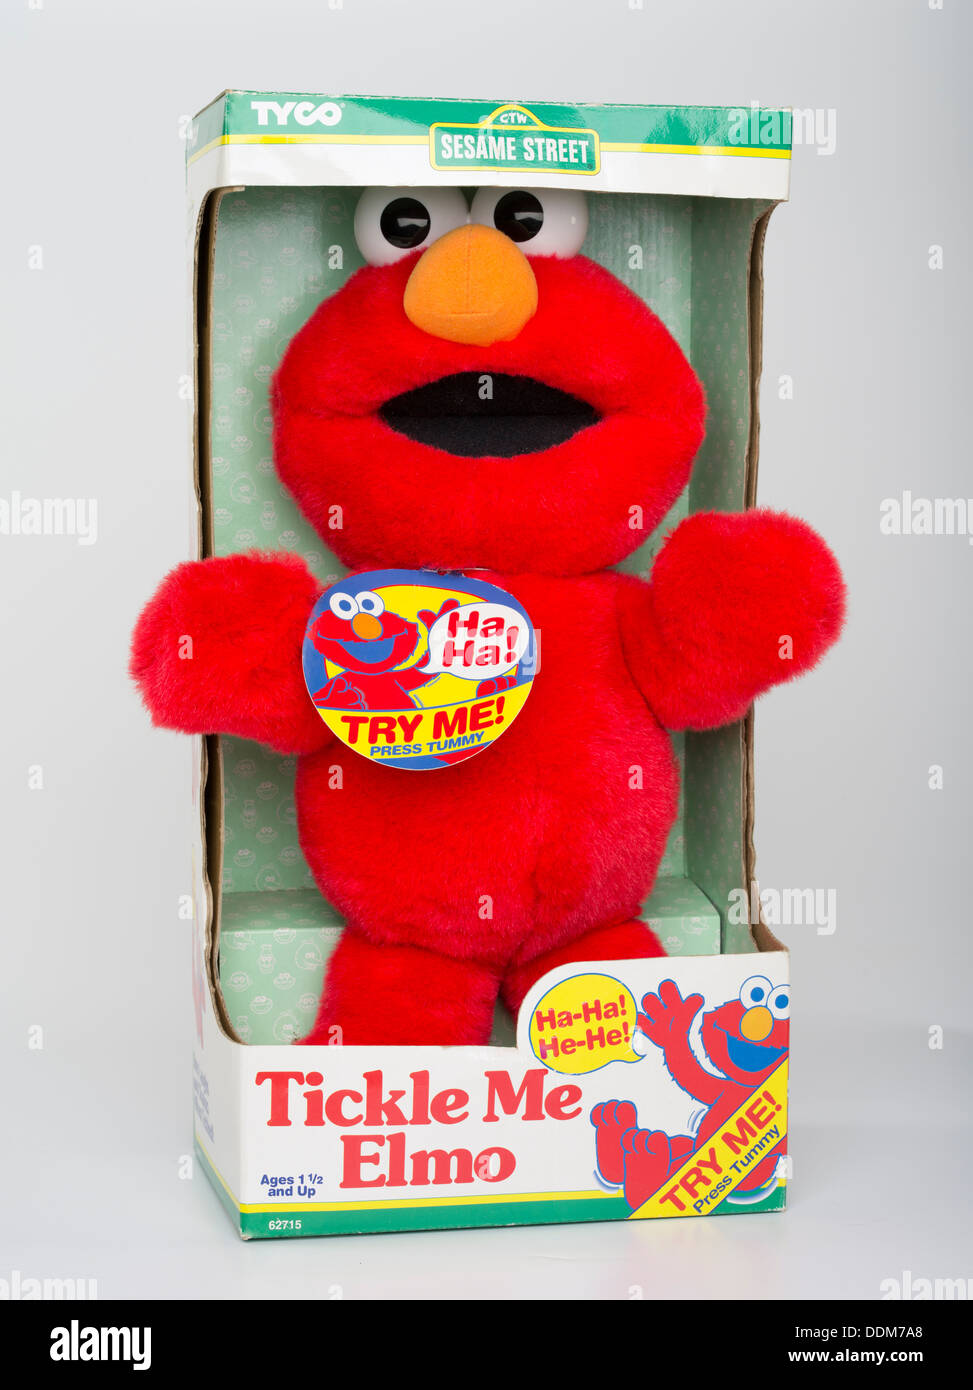 Tickle Me Elmo 1996 by Tyco Toys. Character Muppet from Sesame Street. Iconic Christmas Gift that lead to Elmo-mania Stock Photo